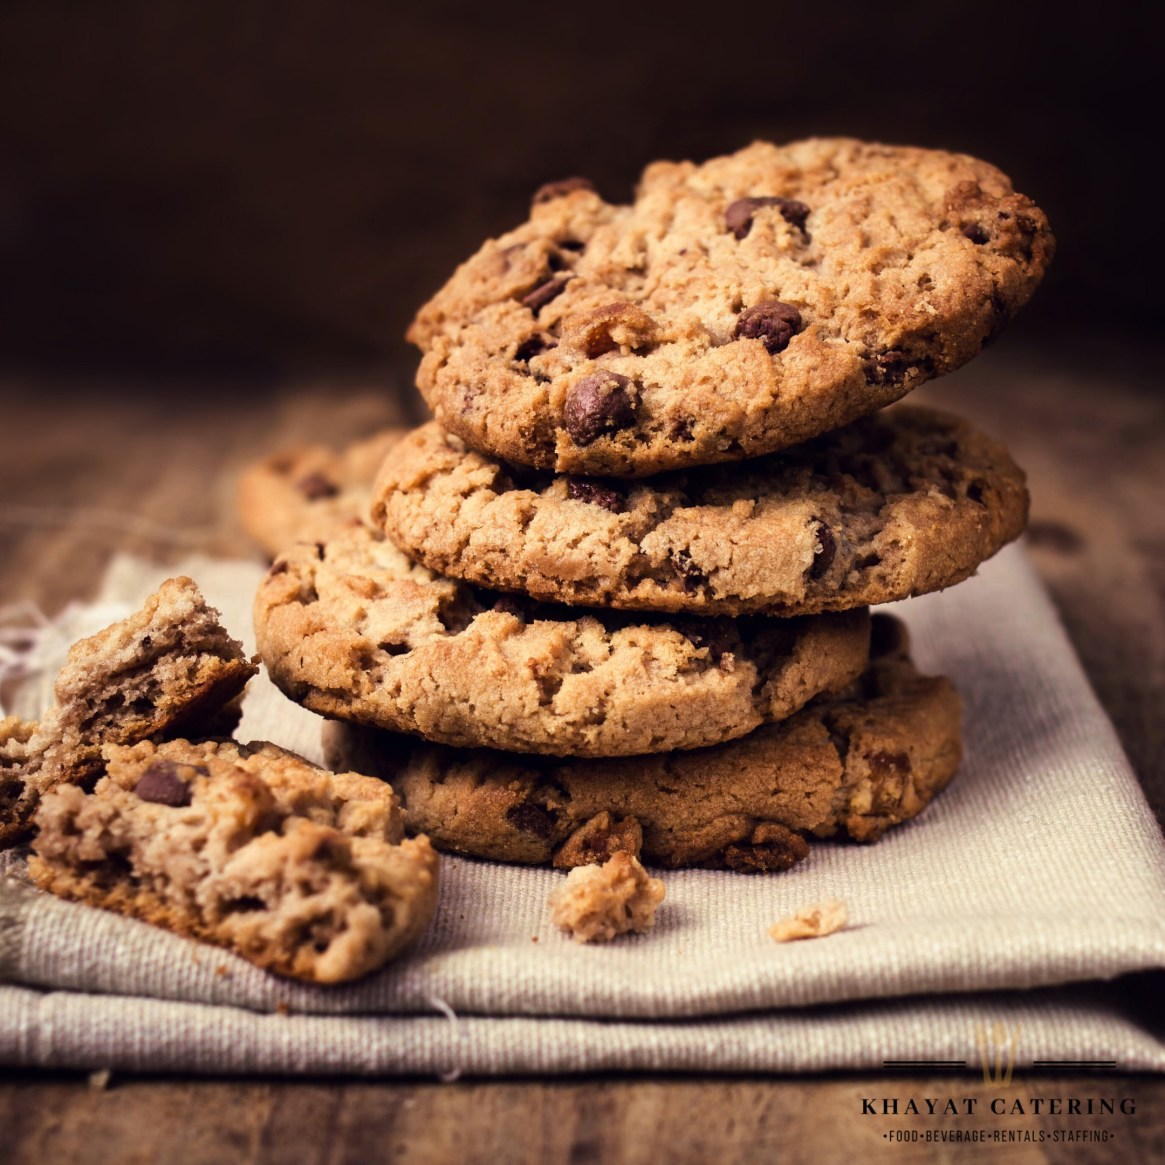 Khayat Catering chocolate chip cookies